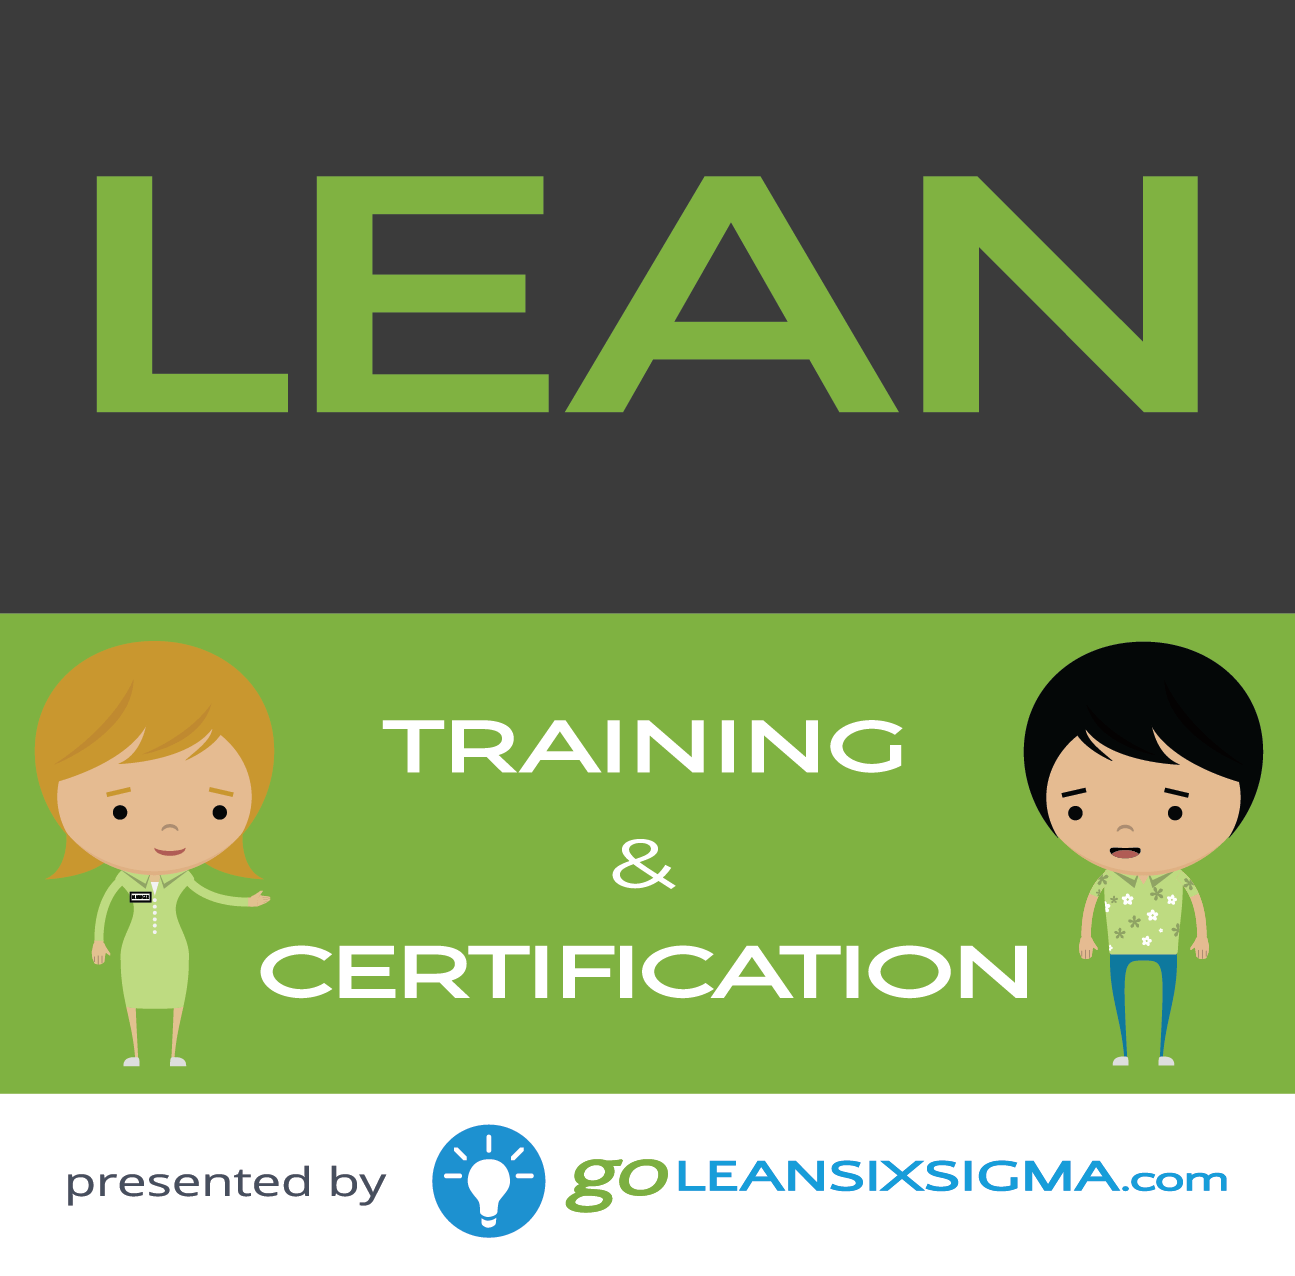 Box Training Certification LeanGoLeanSixSigma.com